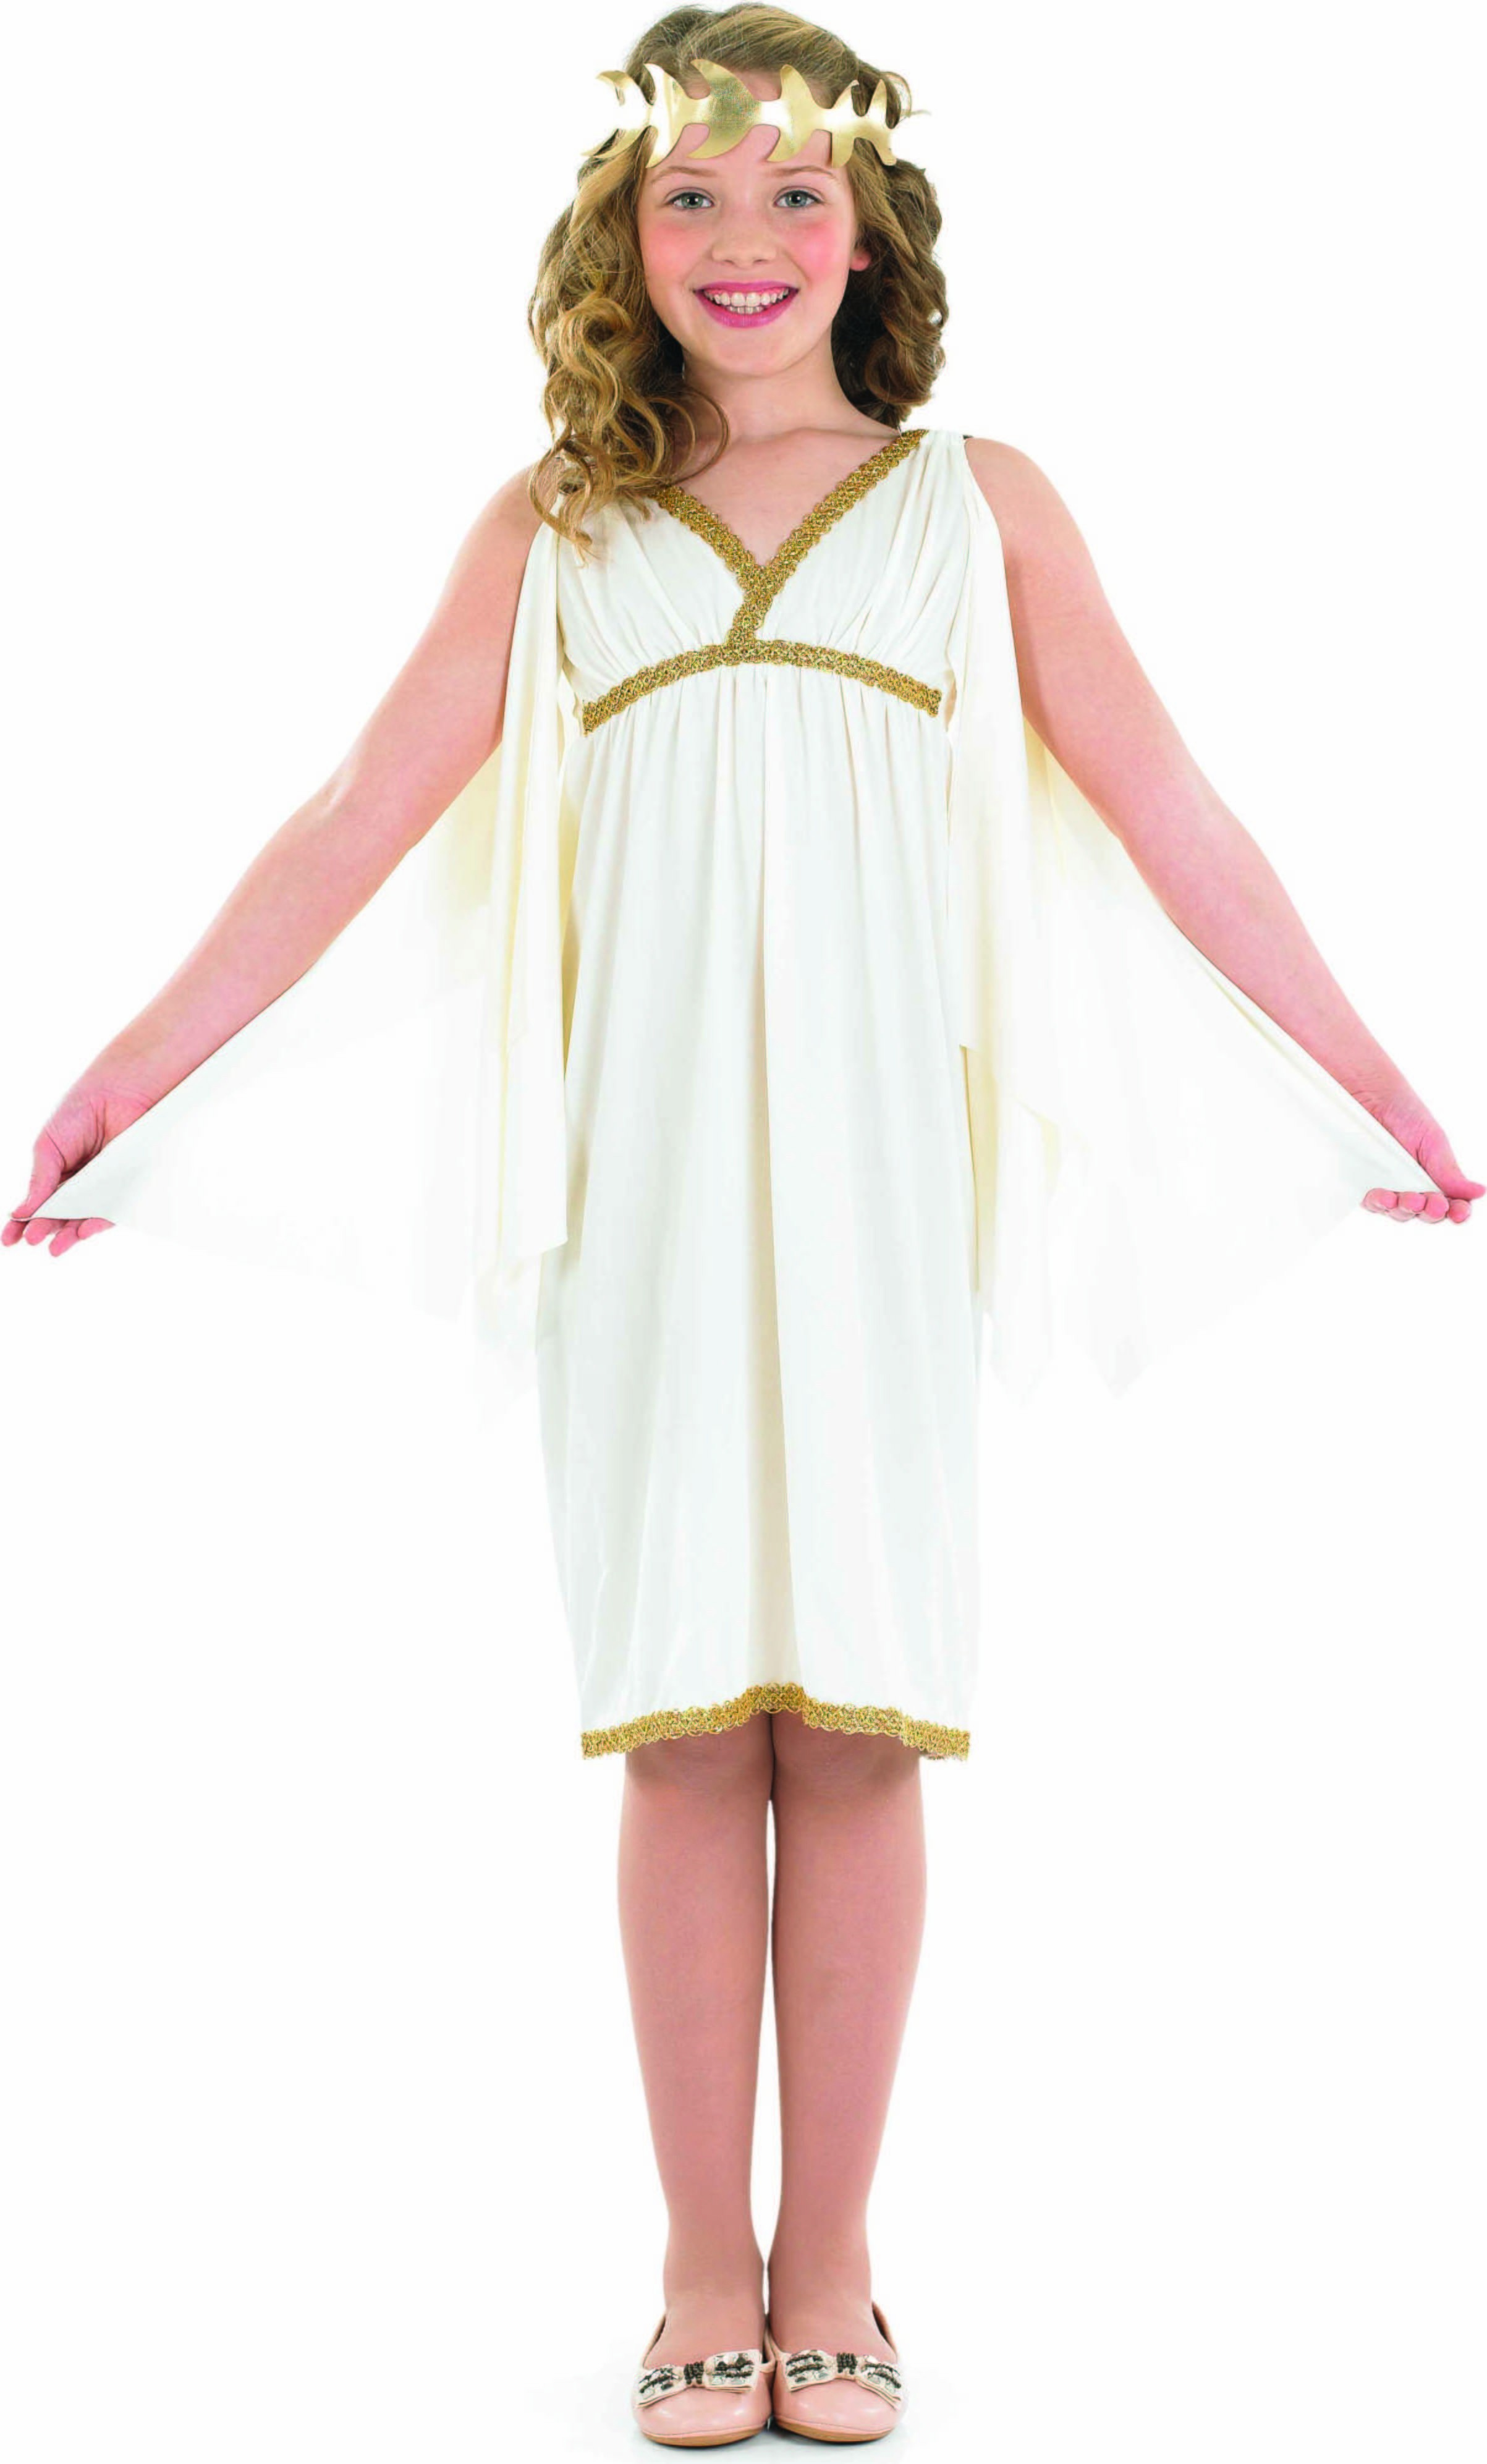 Cleopatra Girl Fancy Dress Costume